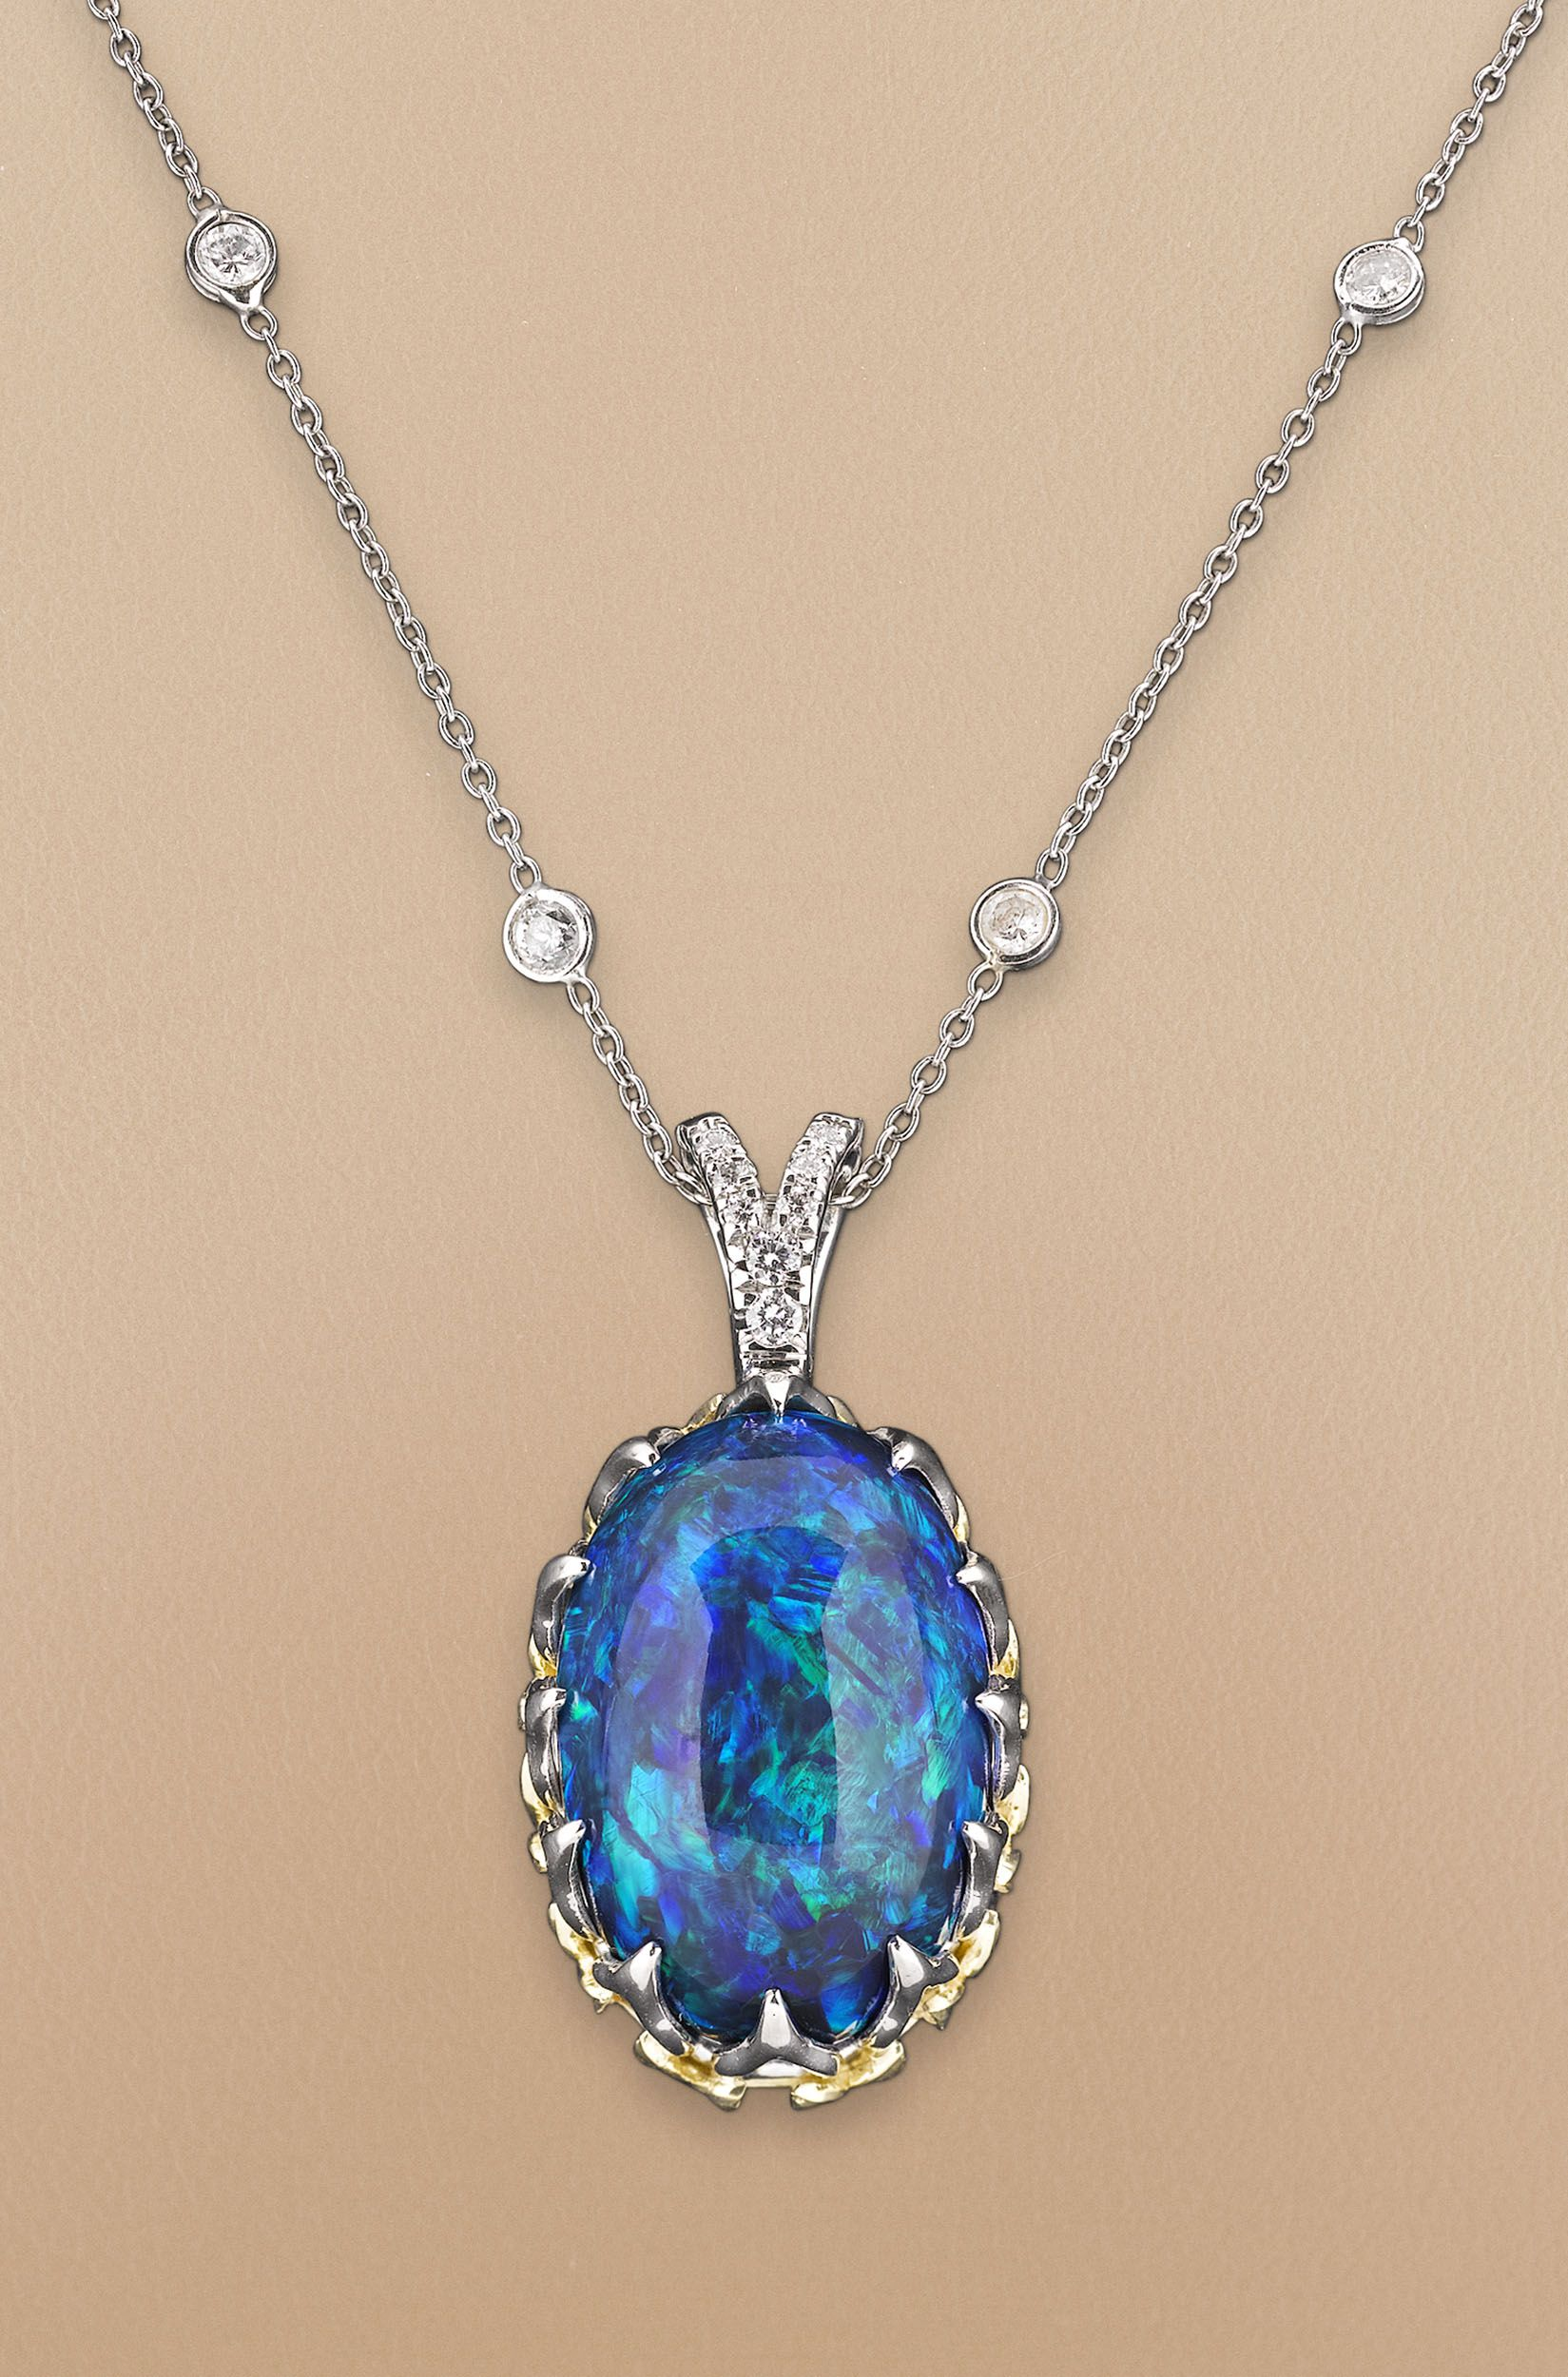 Black Opal Necklace 20 56 Carats Antique Jewelry Opal